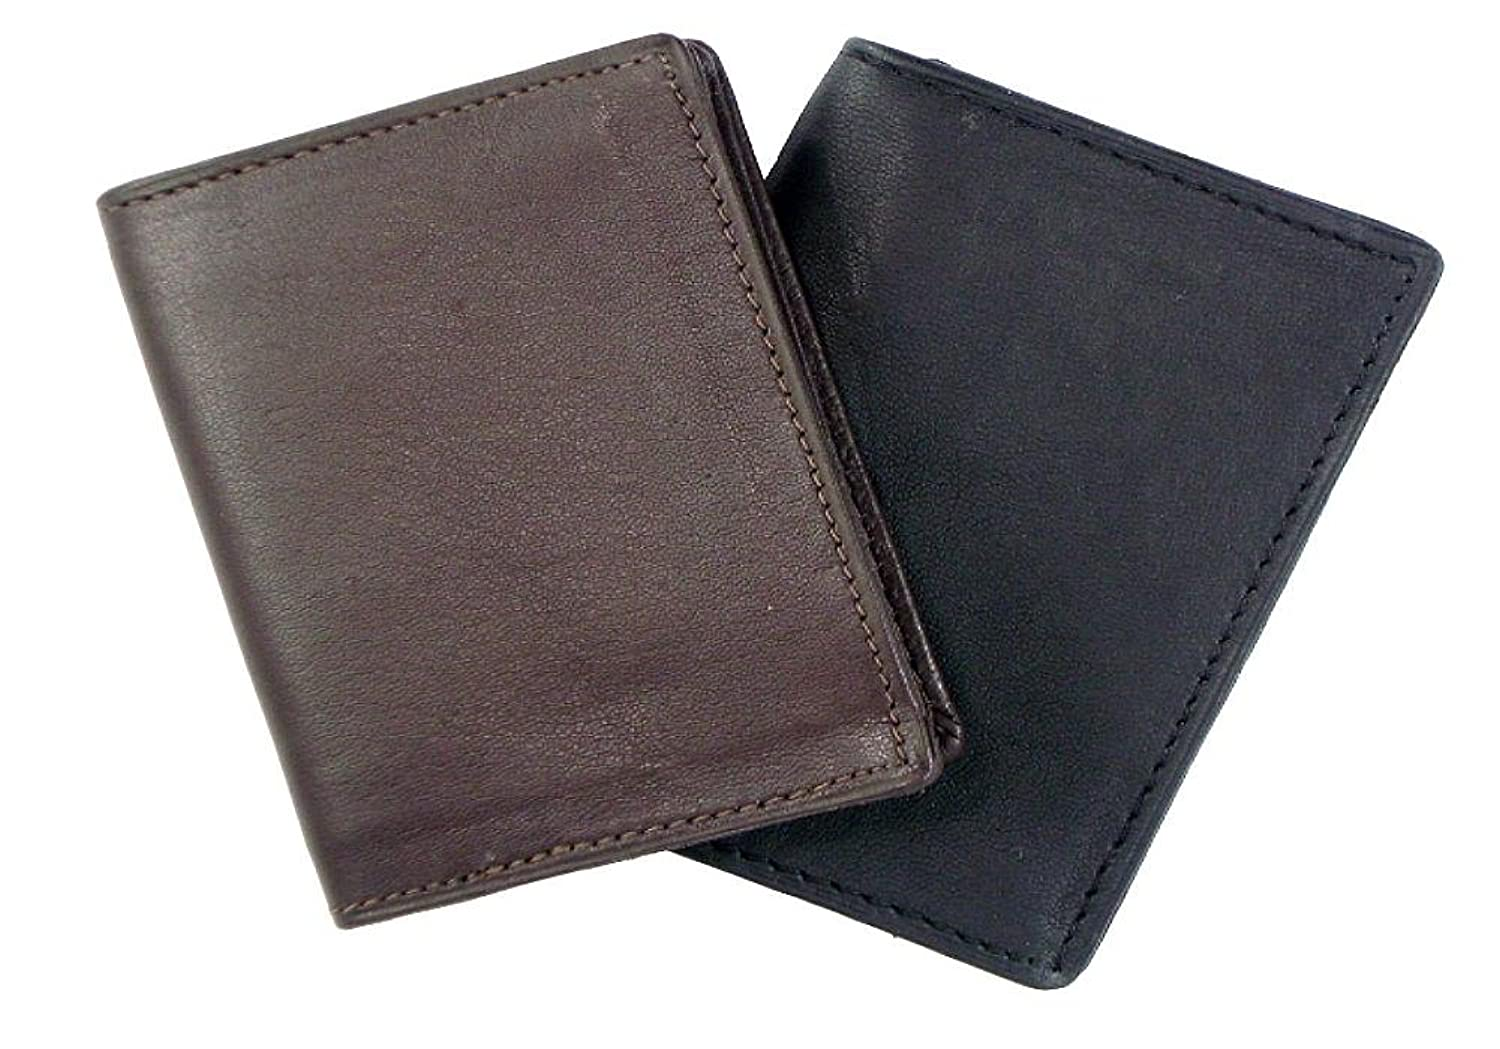 Amazon.com: New Leather Business Card Holder Expandable Wallet ...